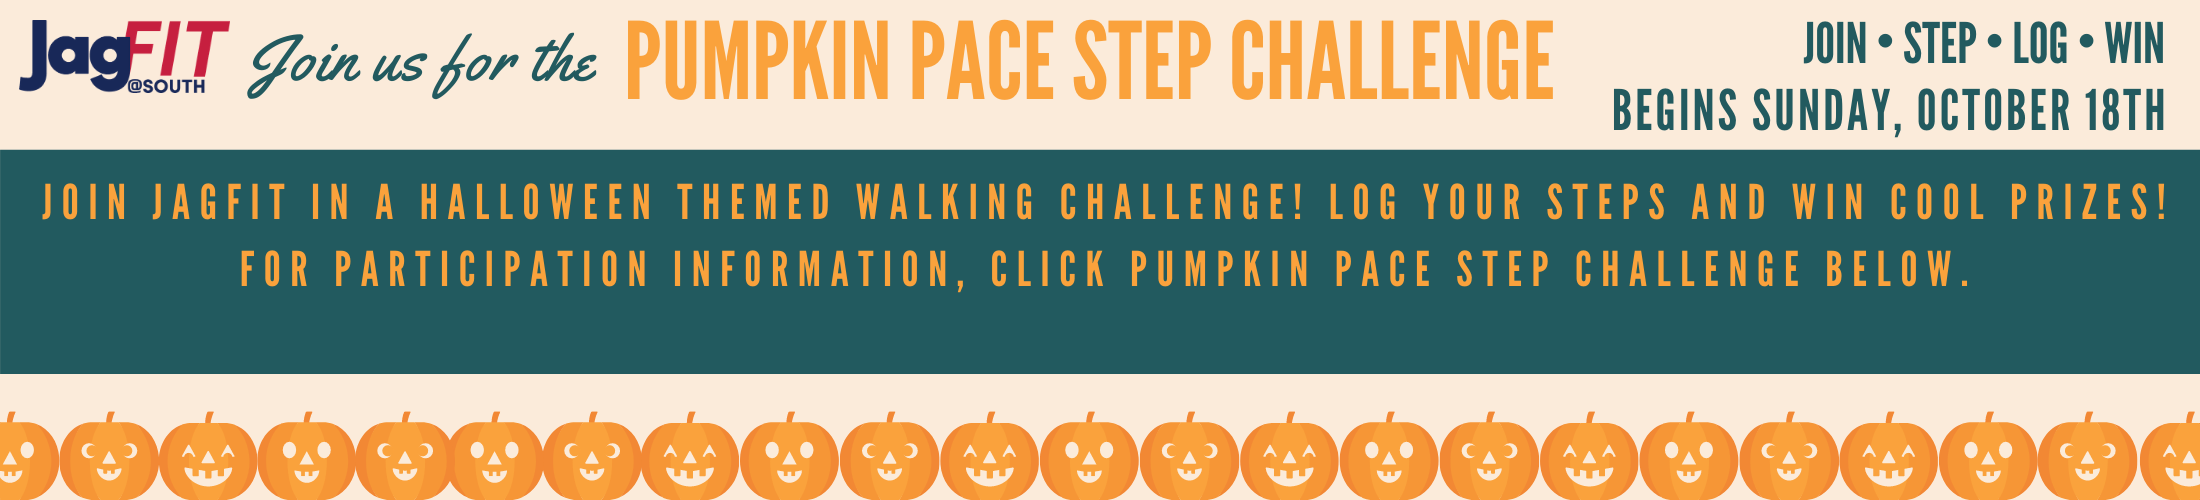 Pumpkin Pace Step Challenge begins October 18th - Themed walking challenge